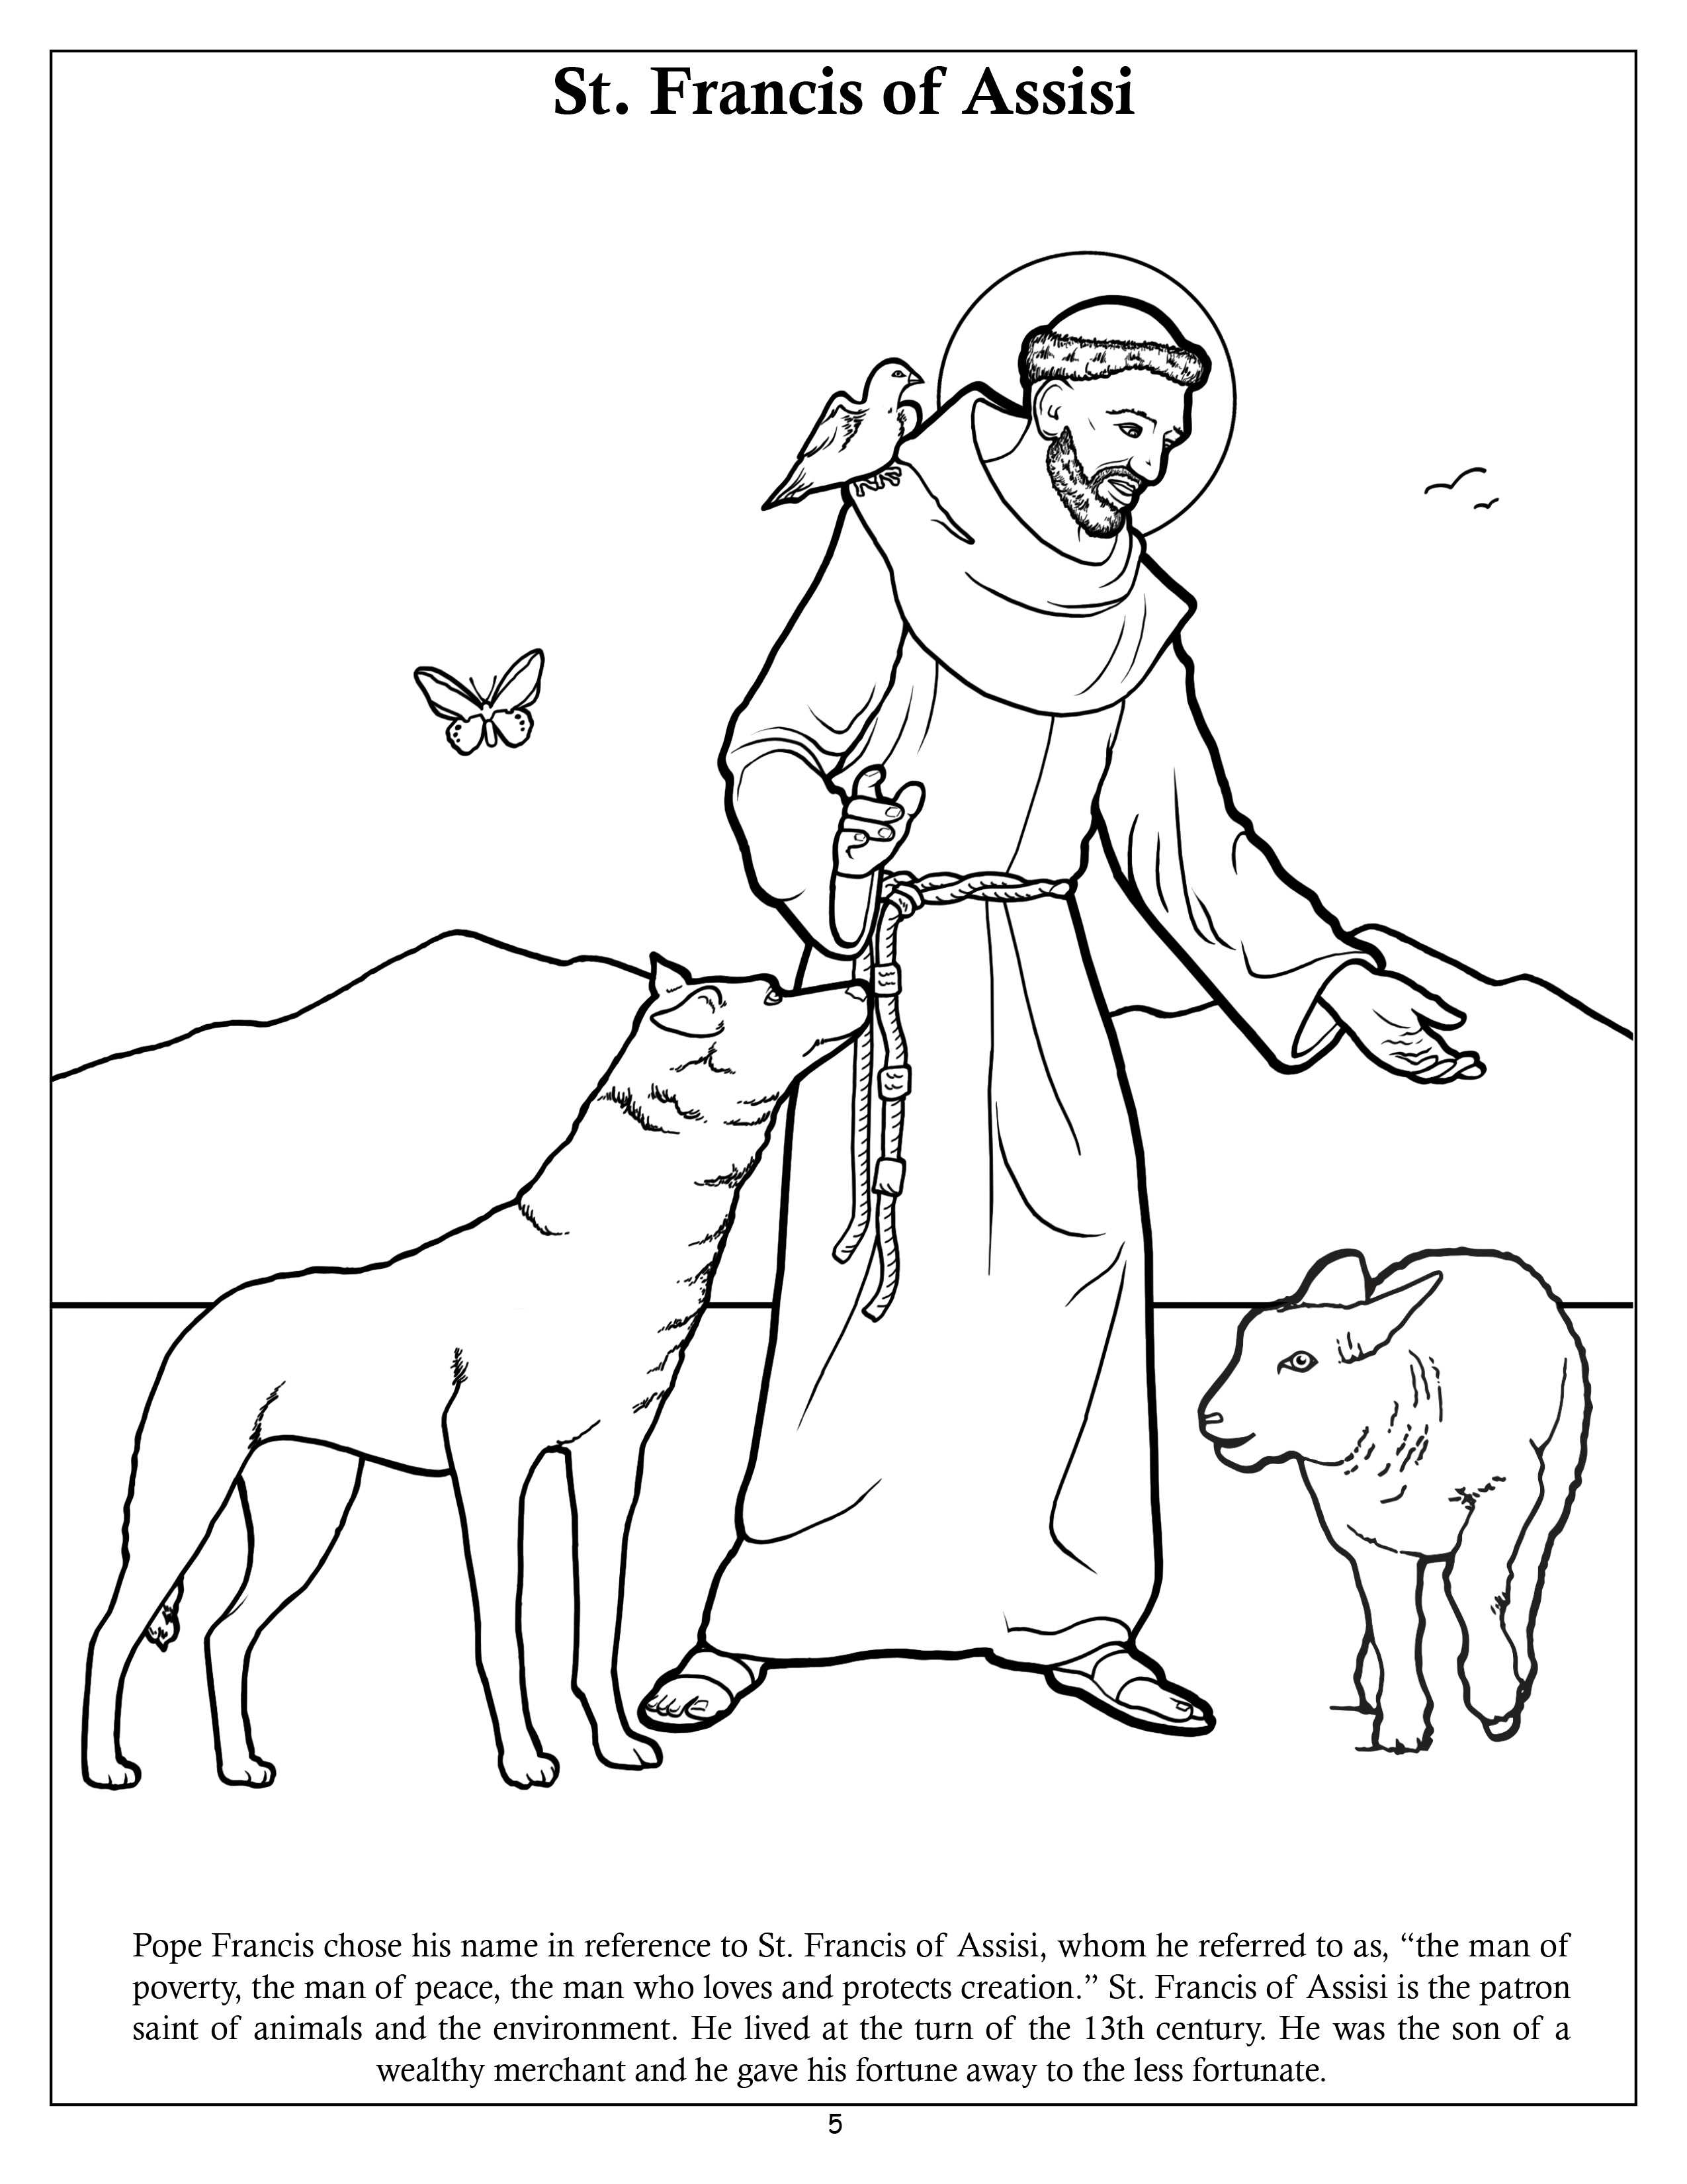 st francis of assisi coloring page 1960823395thumbjpg 9671200 saint francis prayer of assisi page francis coloring st